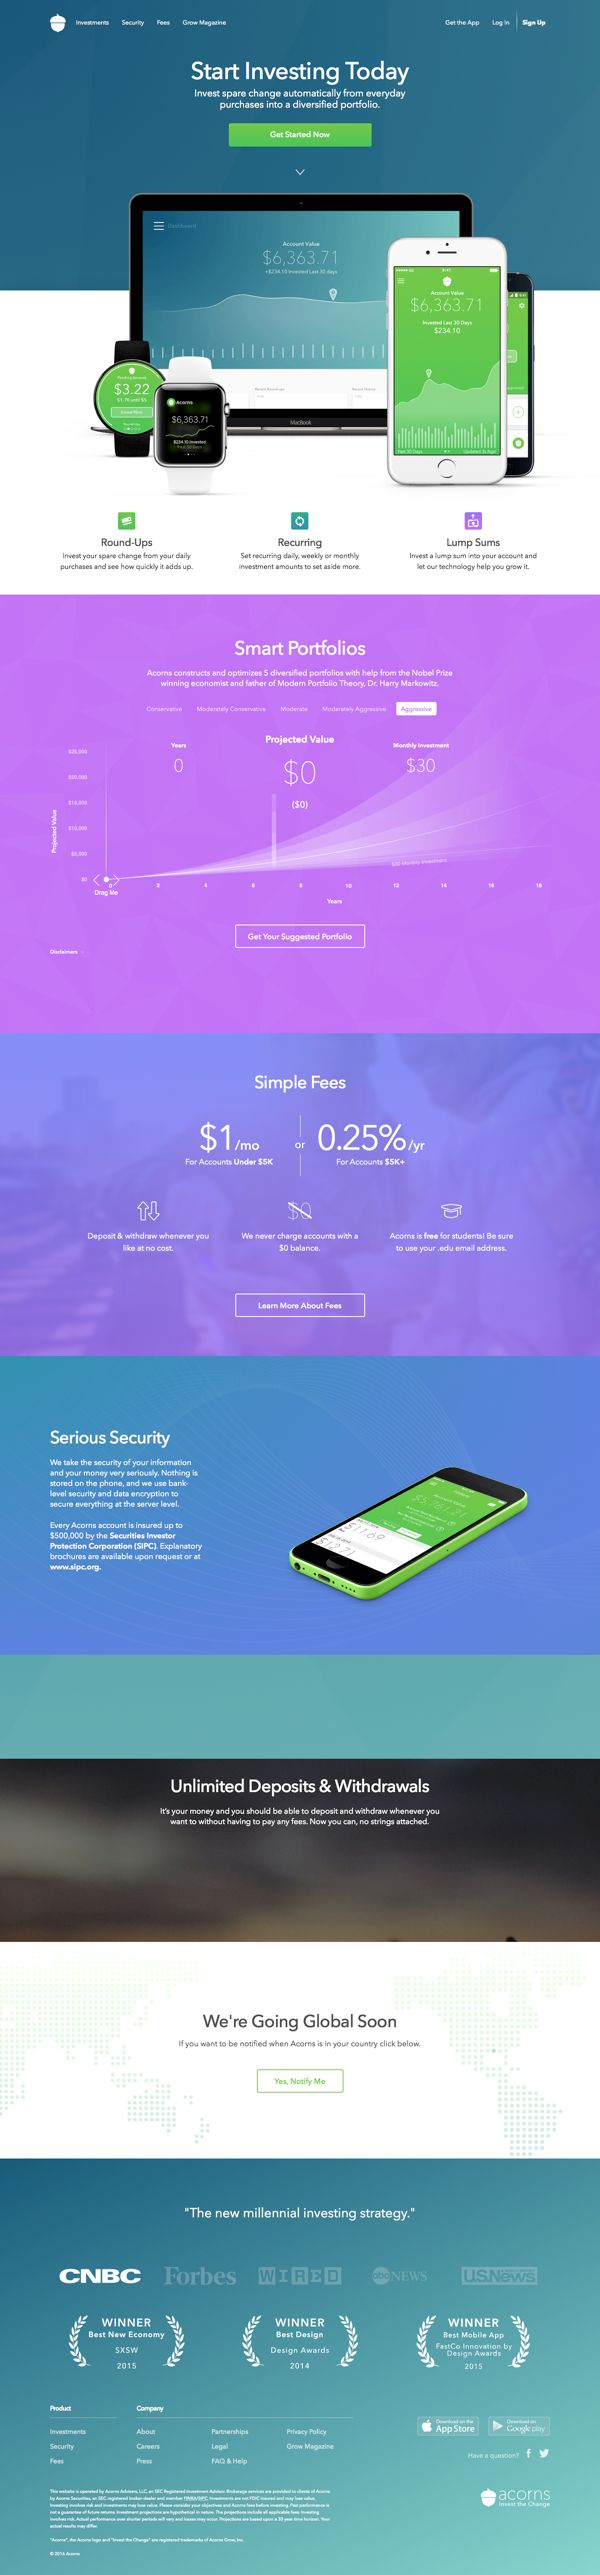 Start Investing Today | Landing Page Design Inspiration